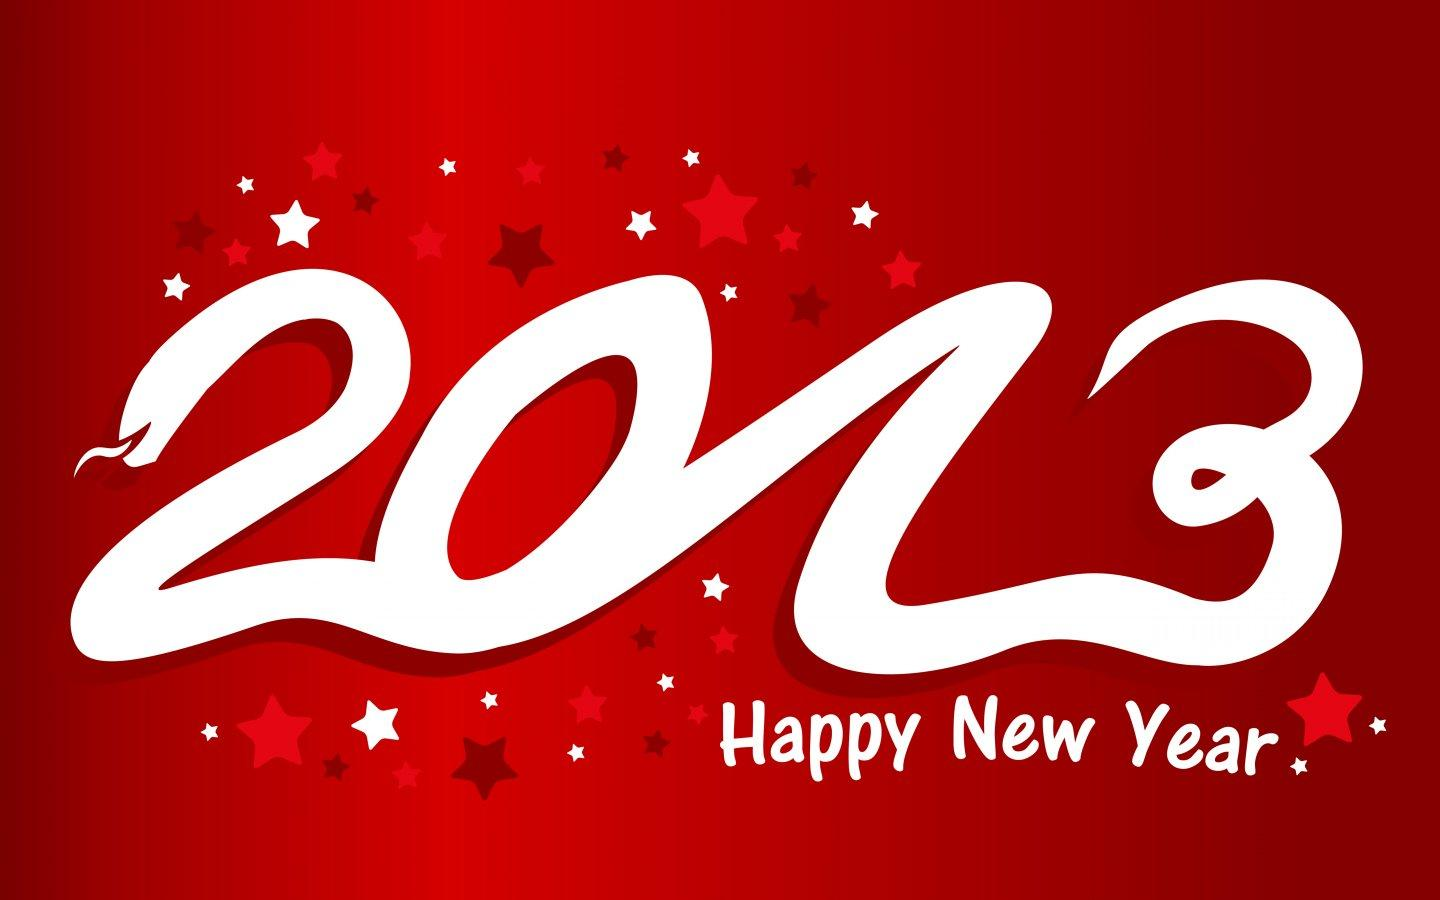 Happy New Year 2013 – Wallpapers